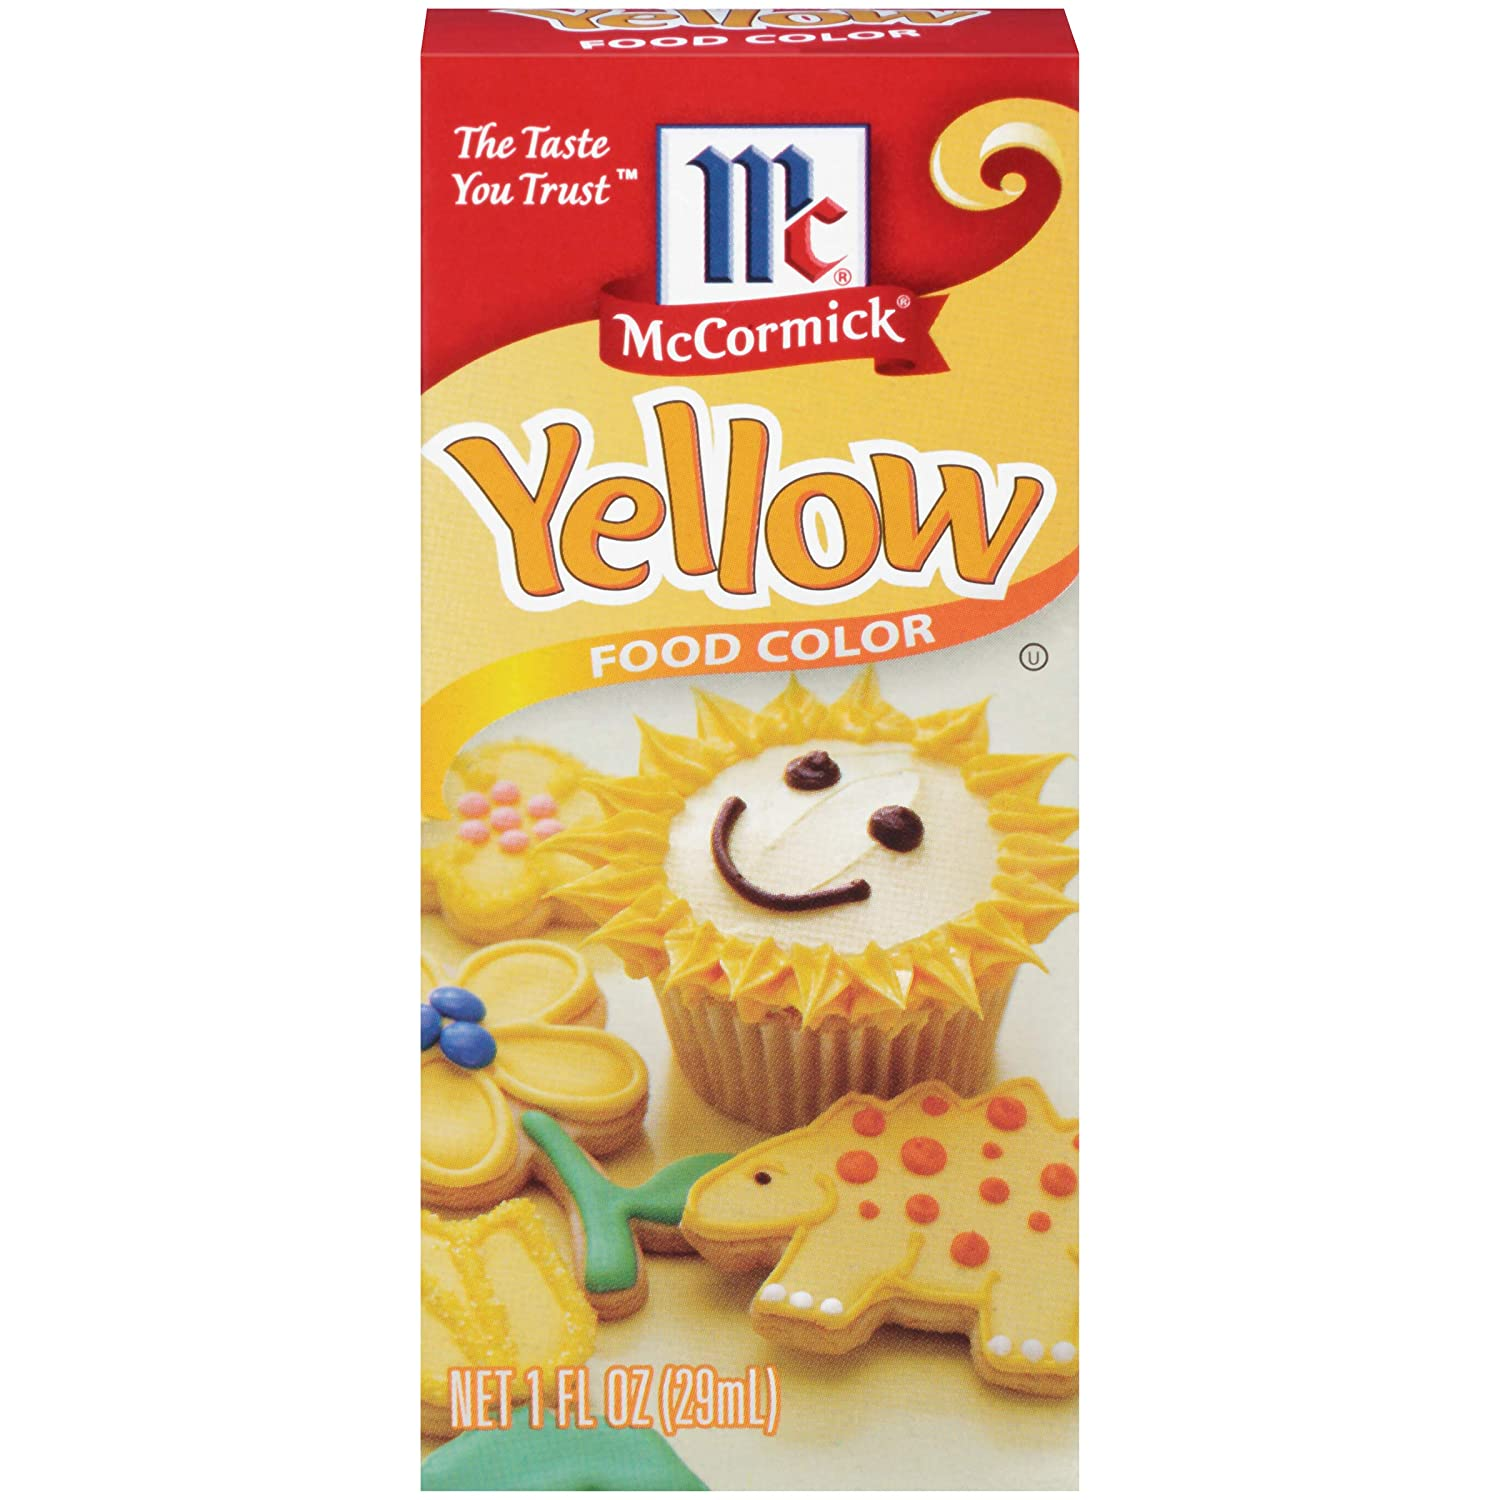 McCormick Yellow Food Color, 1 Fl Oz (Pack of 1)